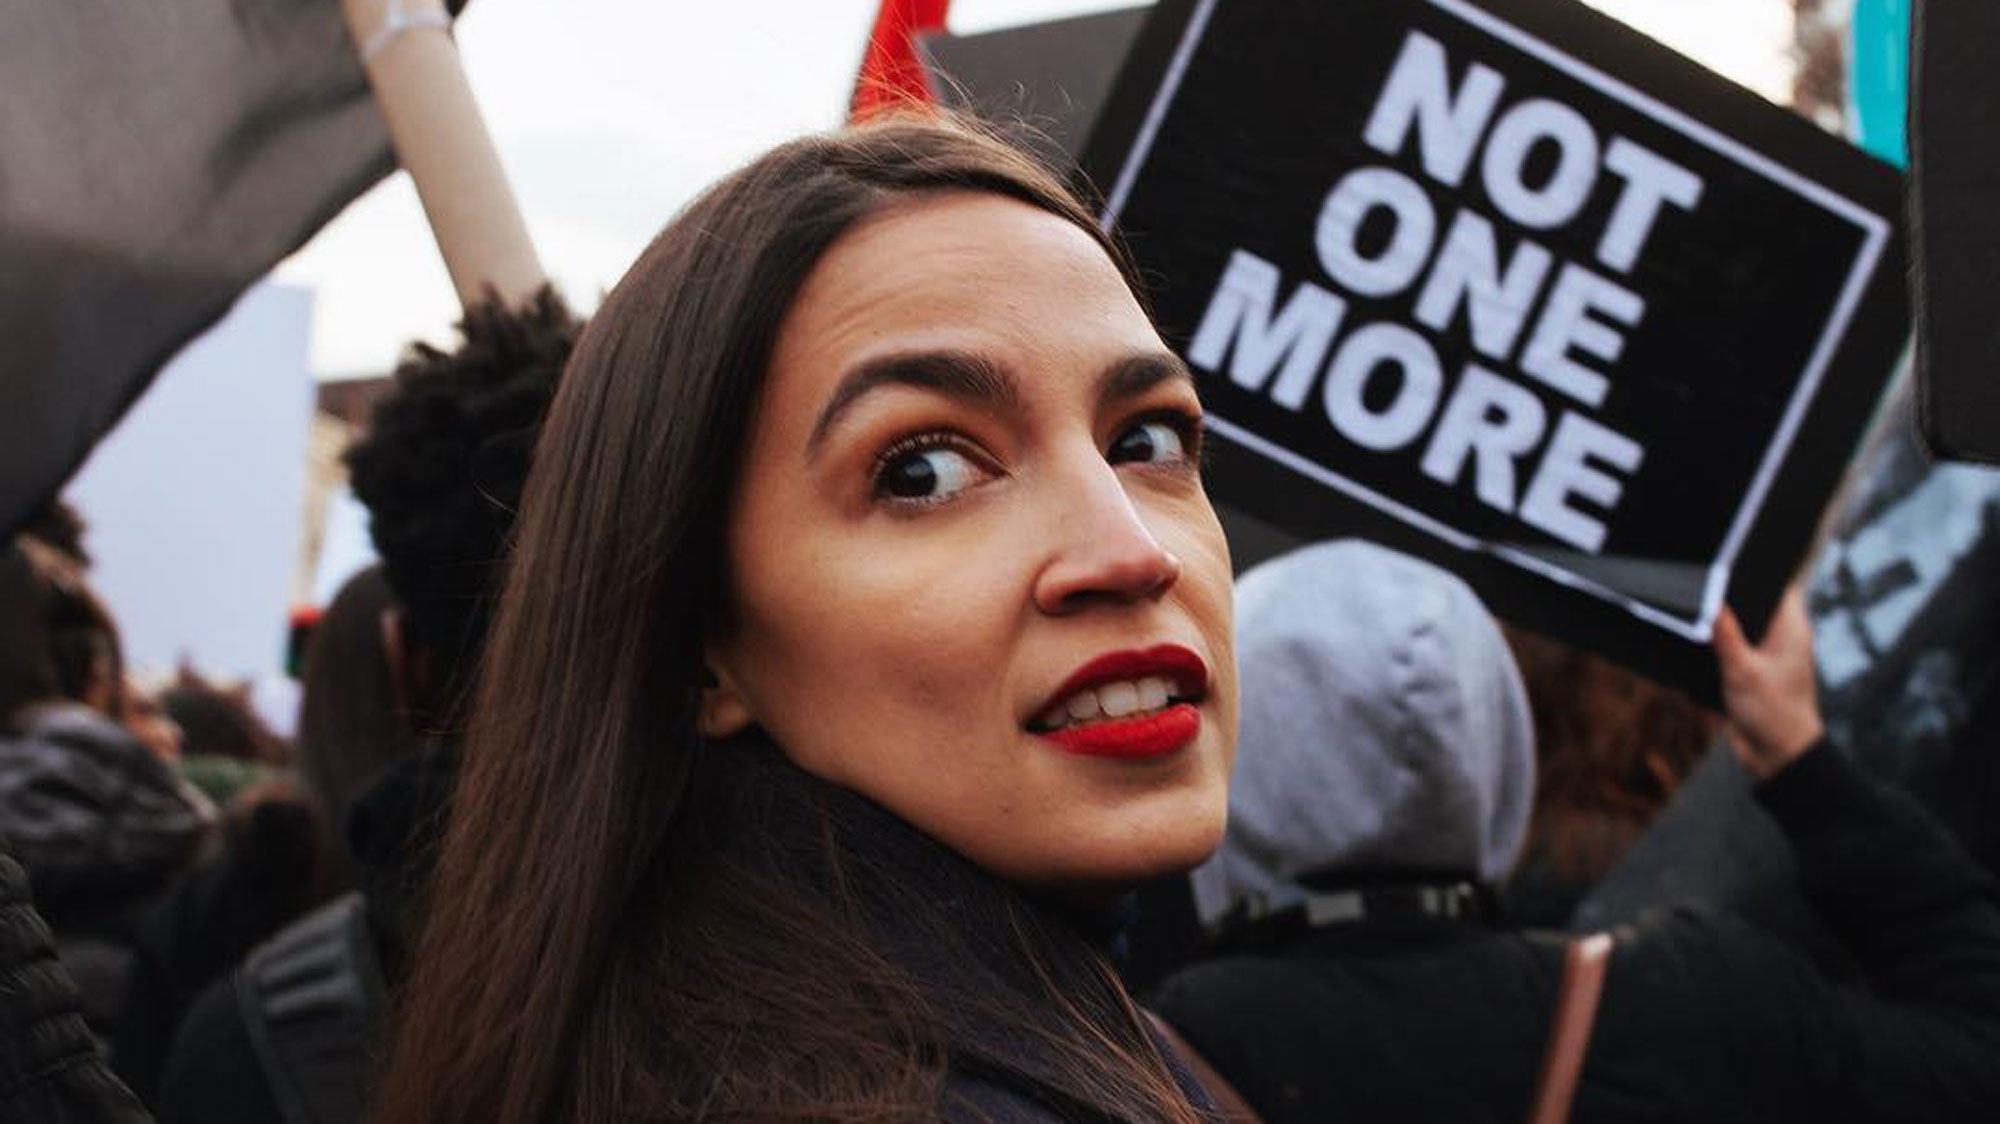 Alexandria Ocasio-Cortez will run against St. John's professor